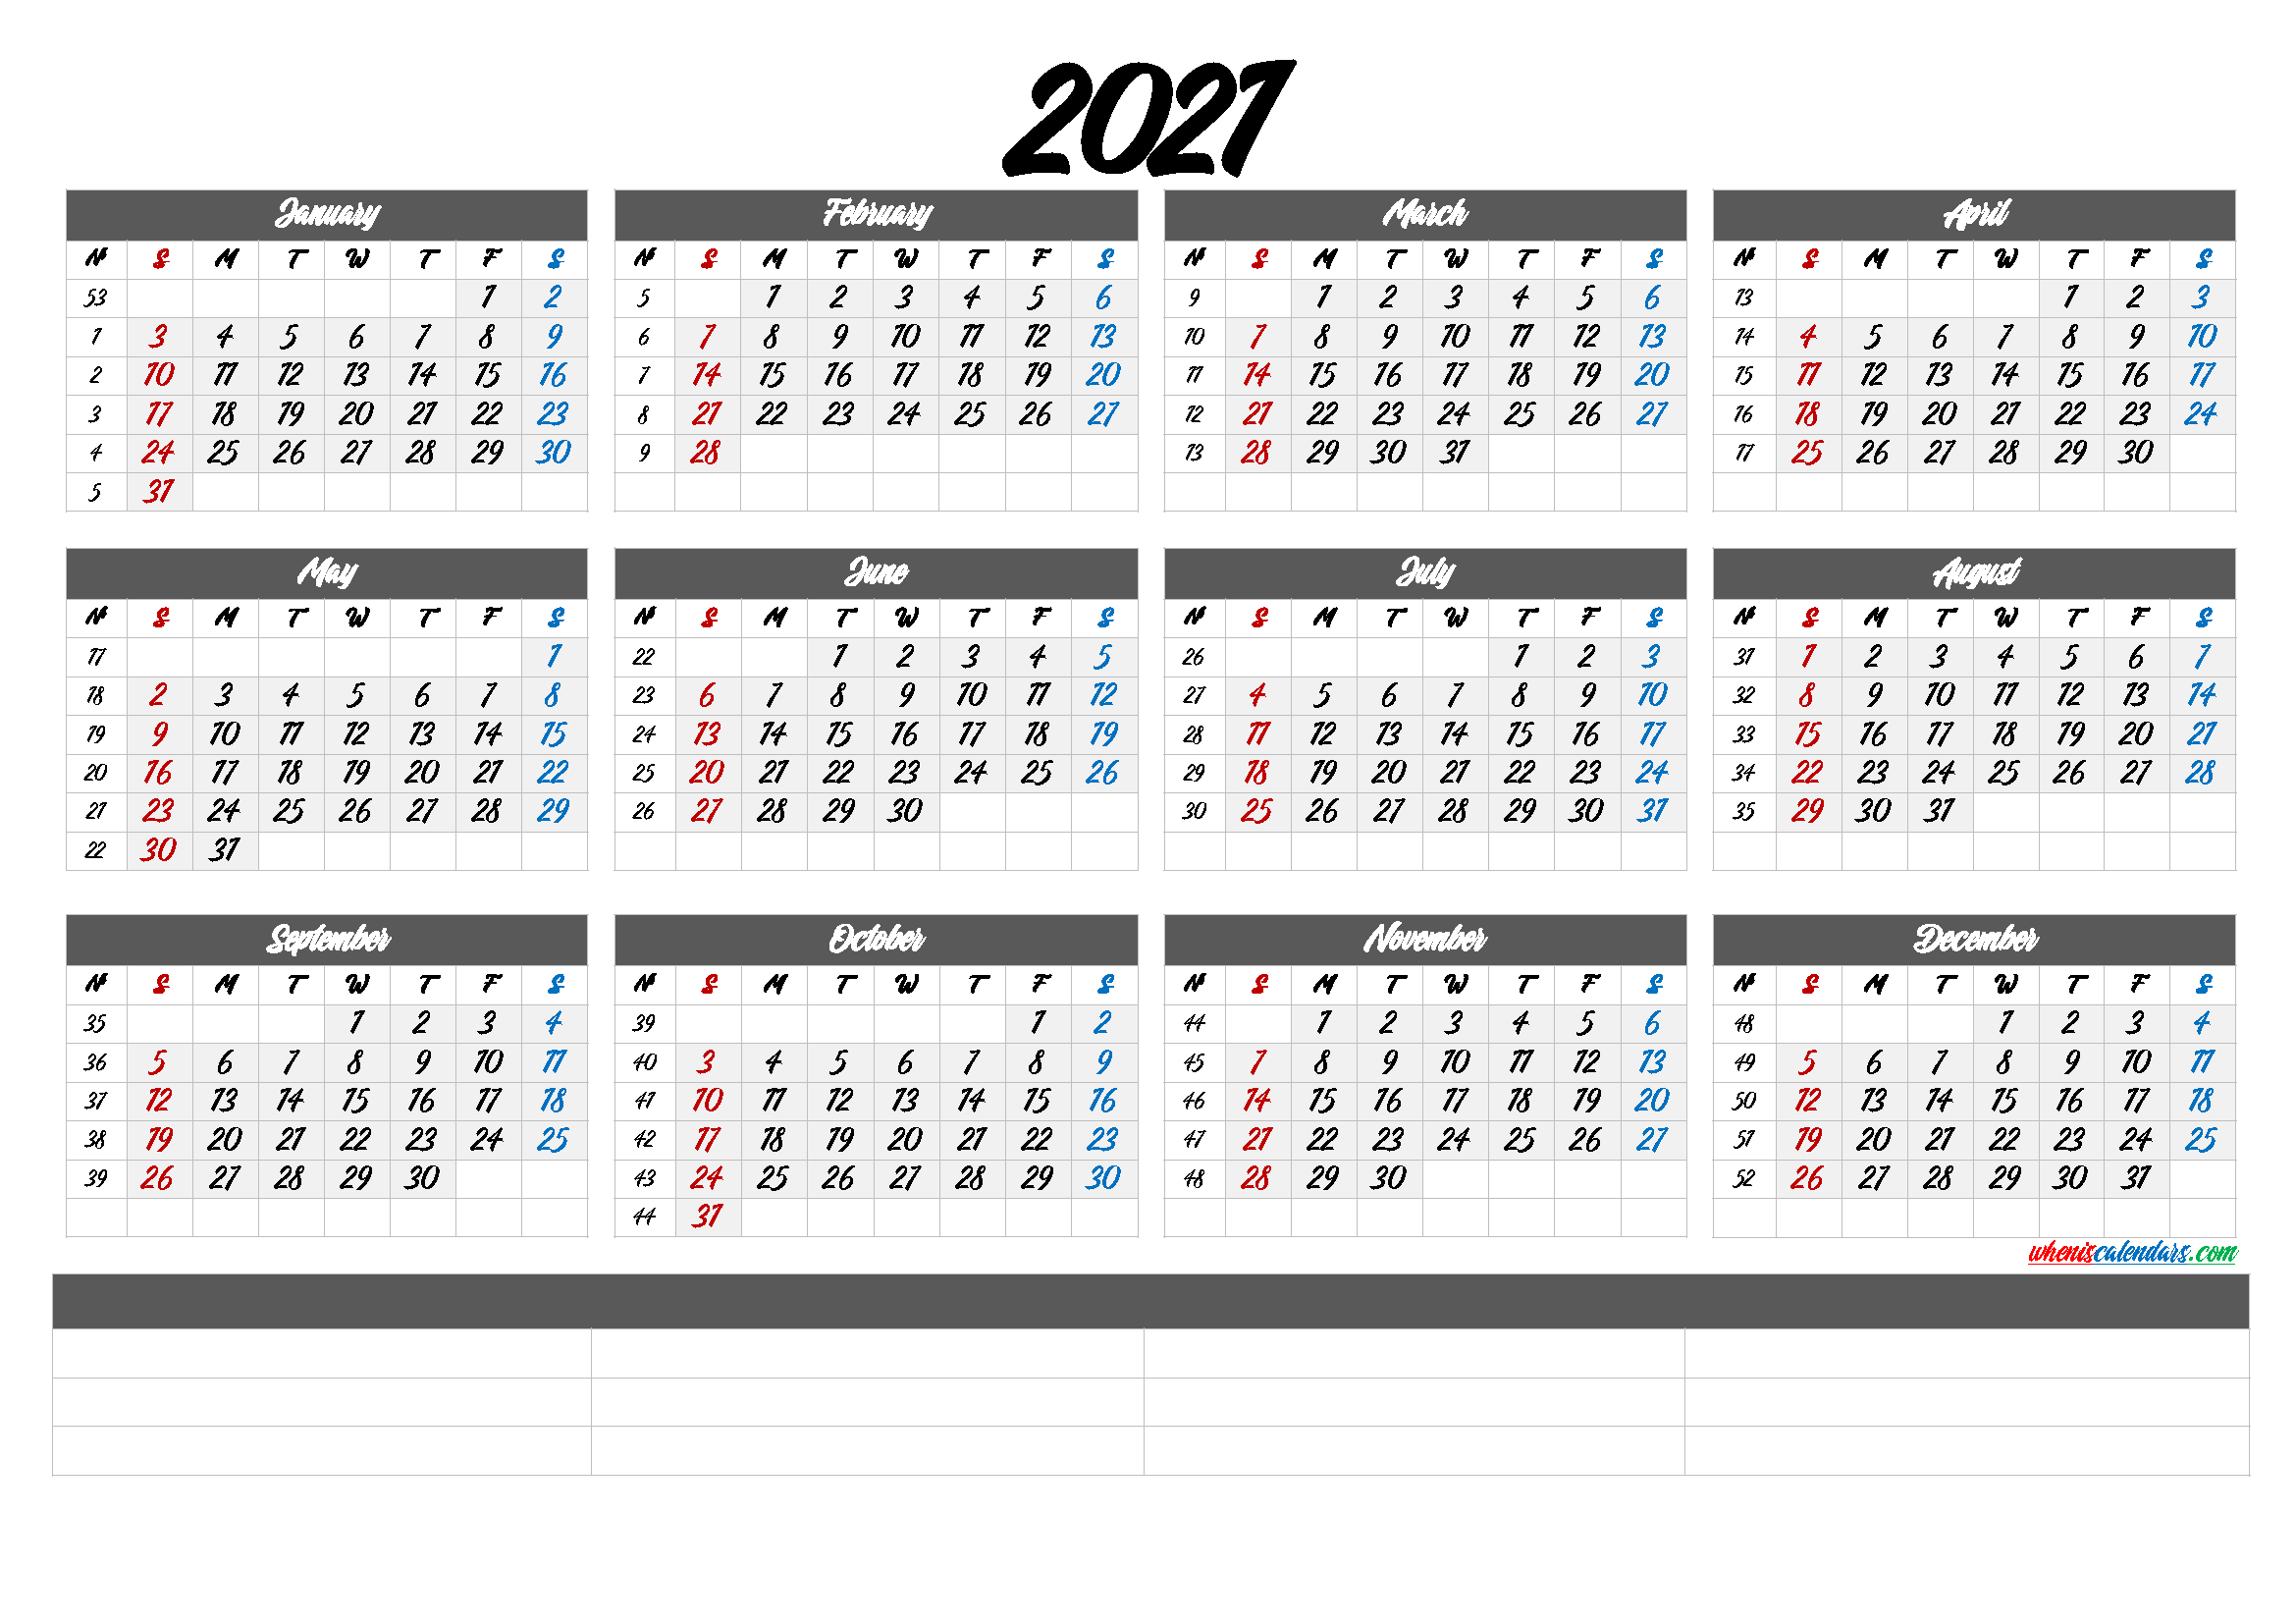 Printable 2021 Calendar by Month